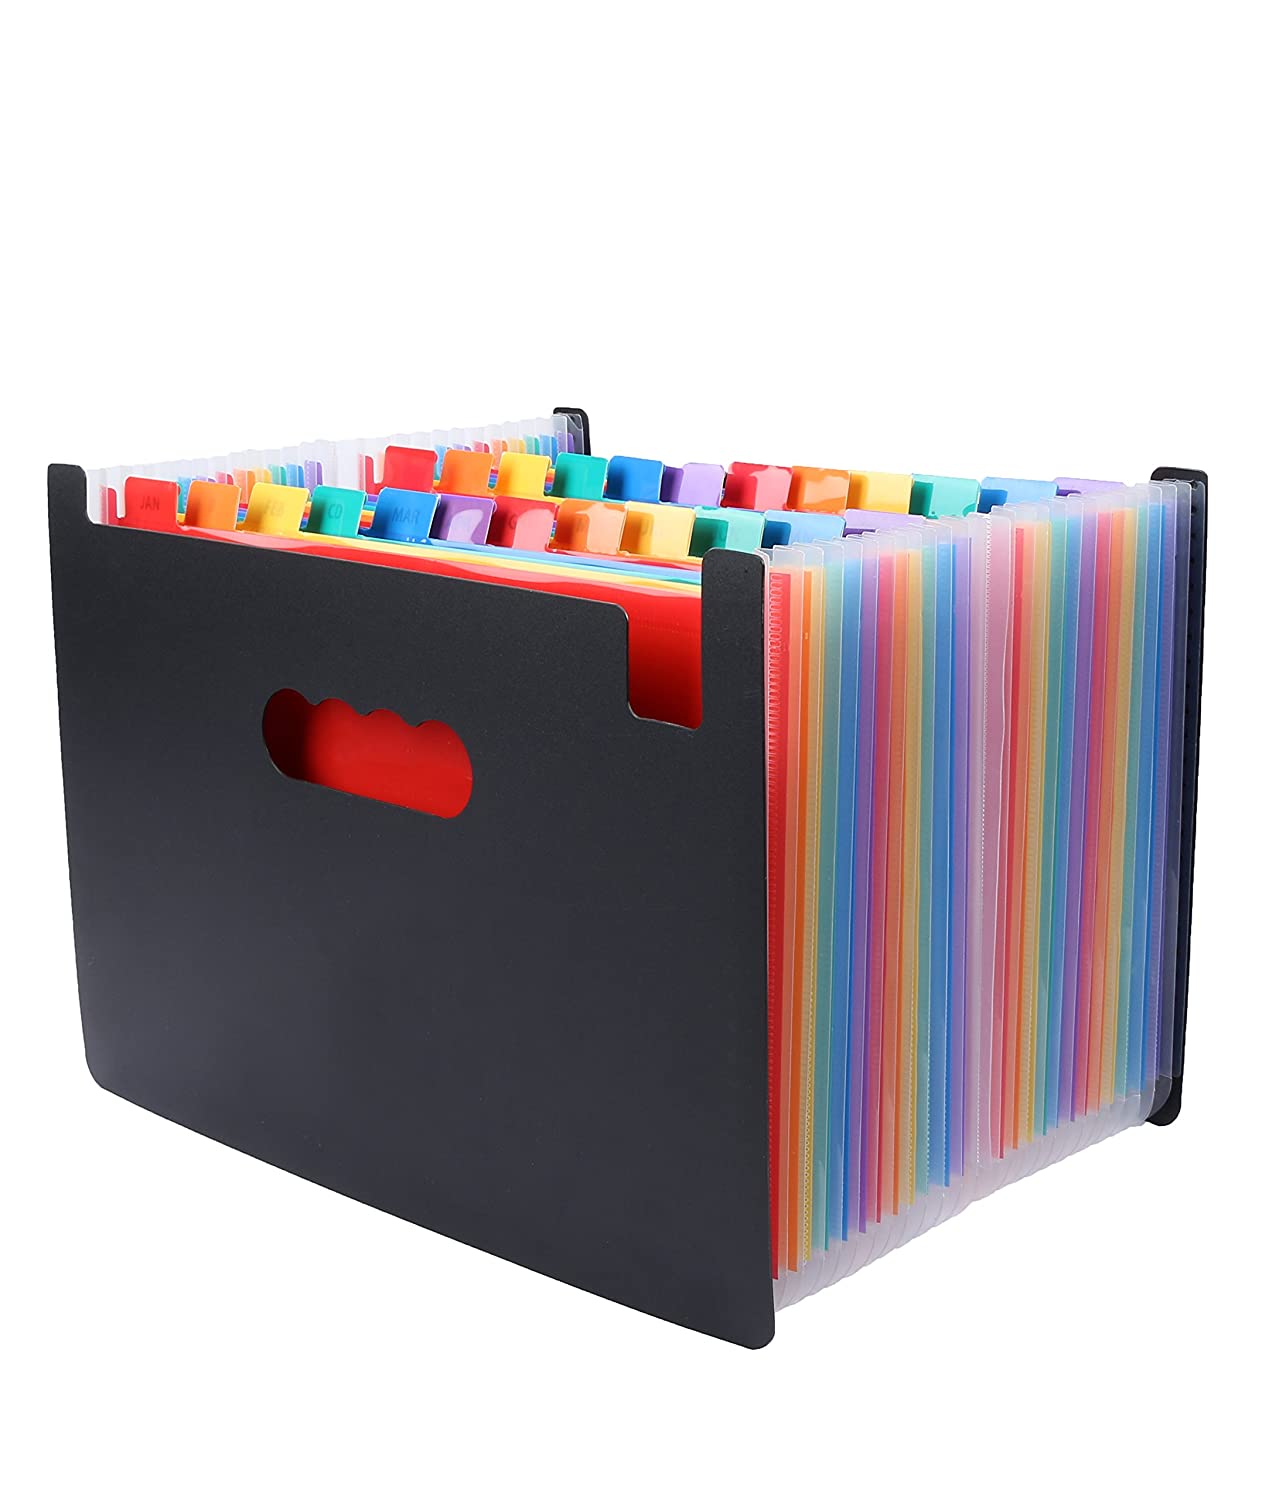 MYEUSSN 24 Pockets Expanding File Folder Large Space Design A4 Filing Folders Box File Business Home Office Document Accordion File Storage Bag